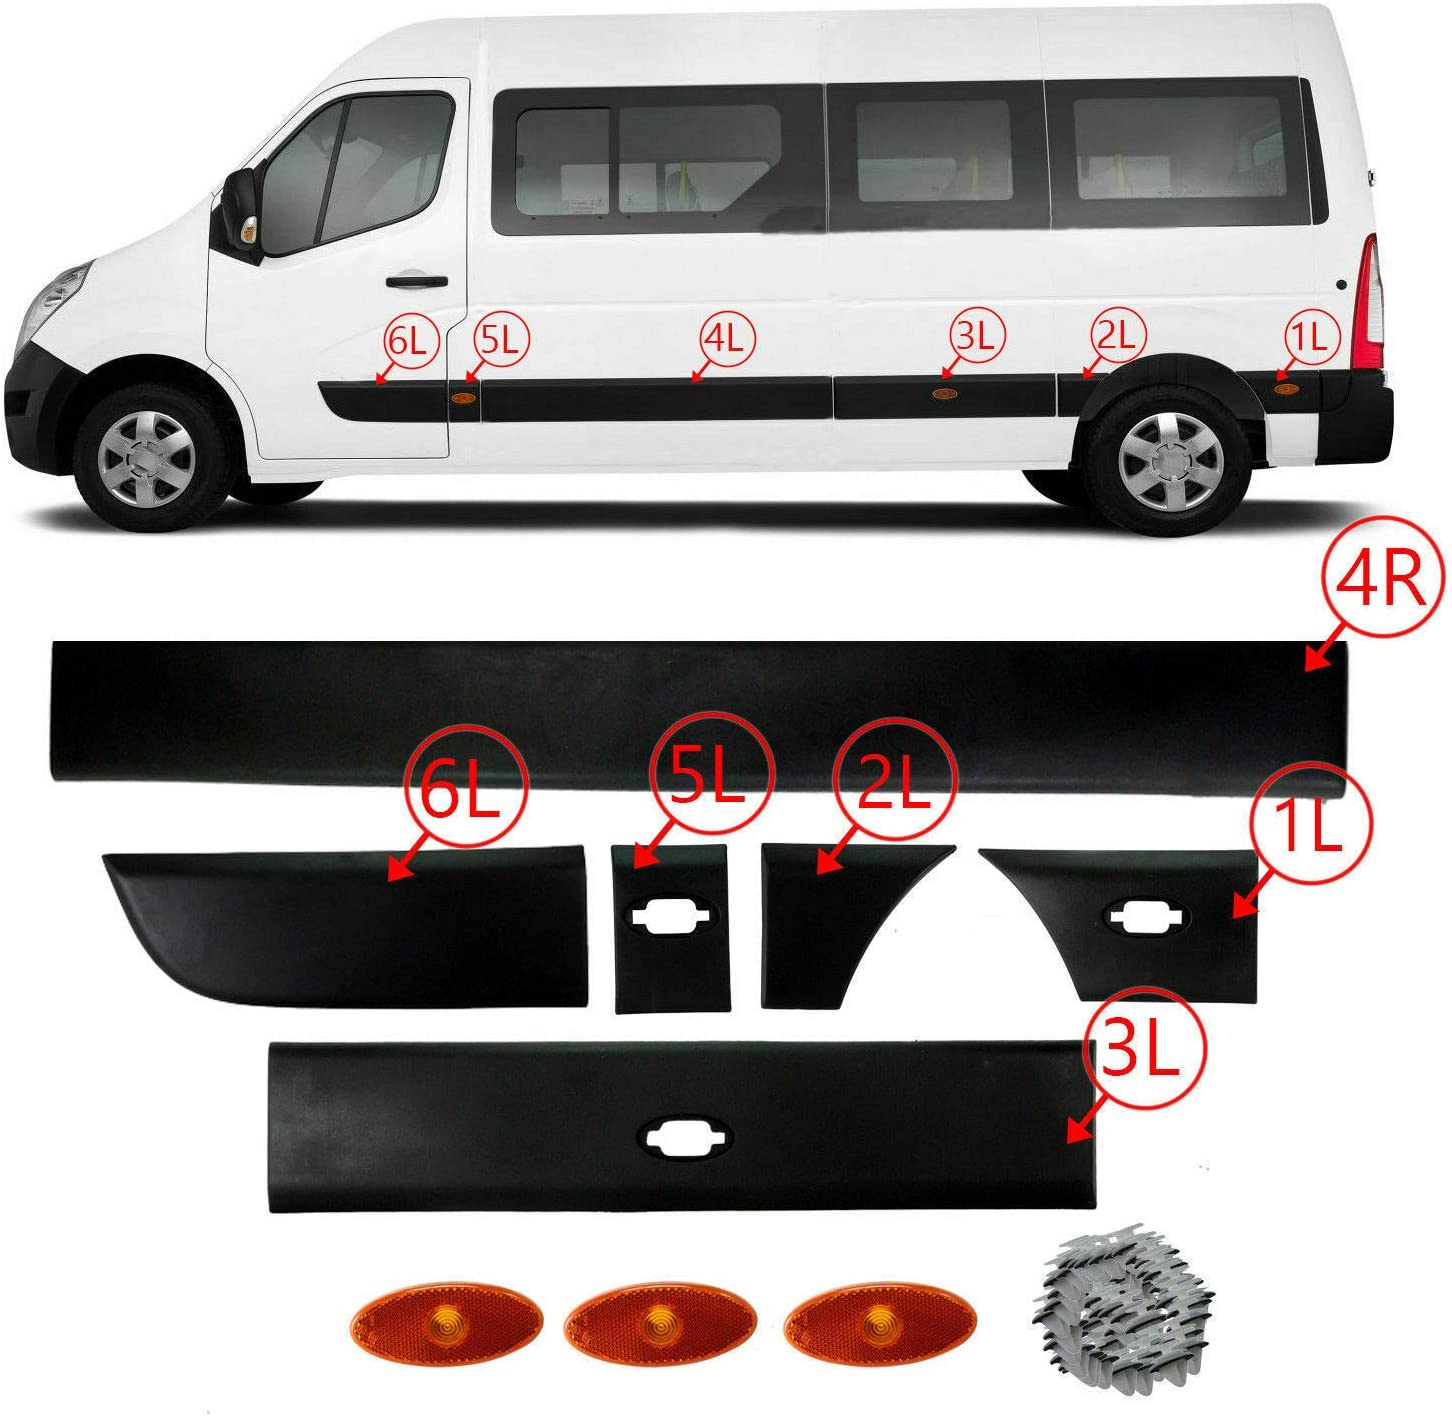 Side panel signal new model for Renault  Master-3  Oe 261B00001R